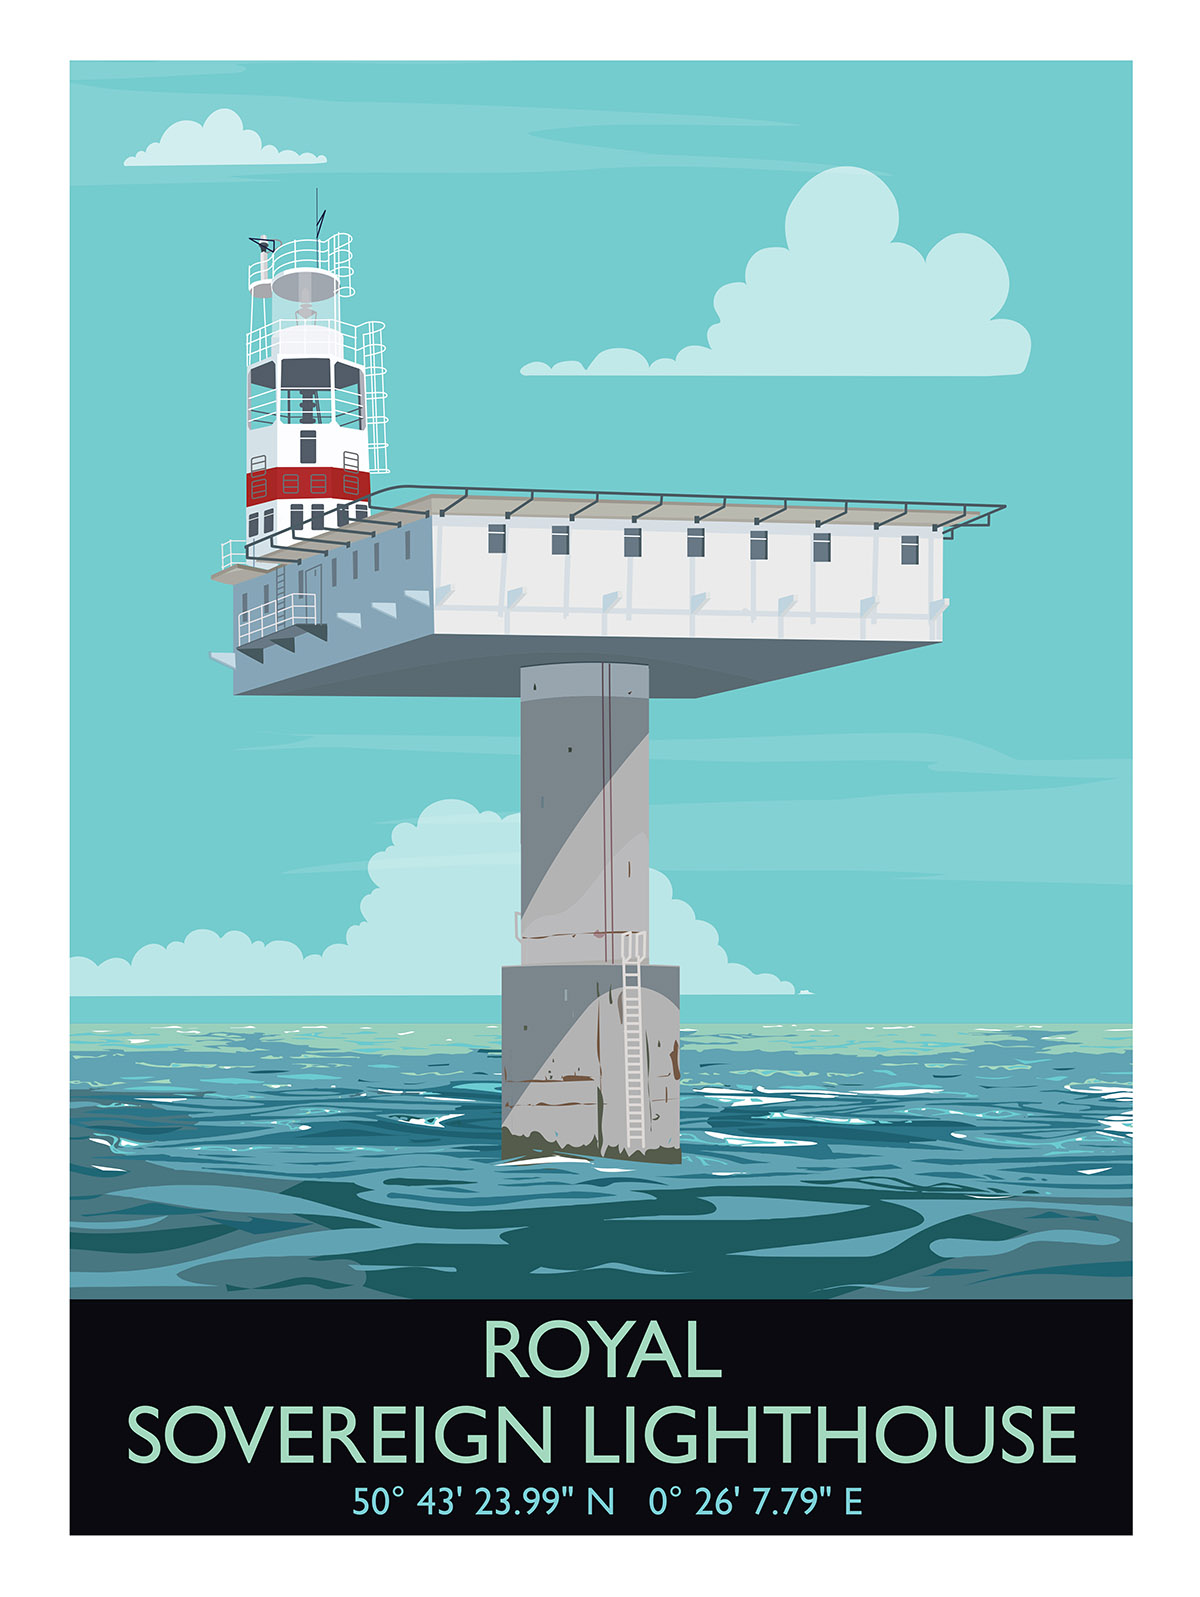 Royal Sovereign Lighthouse